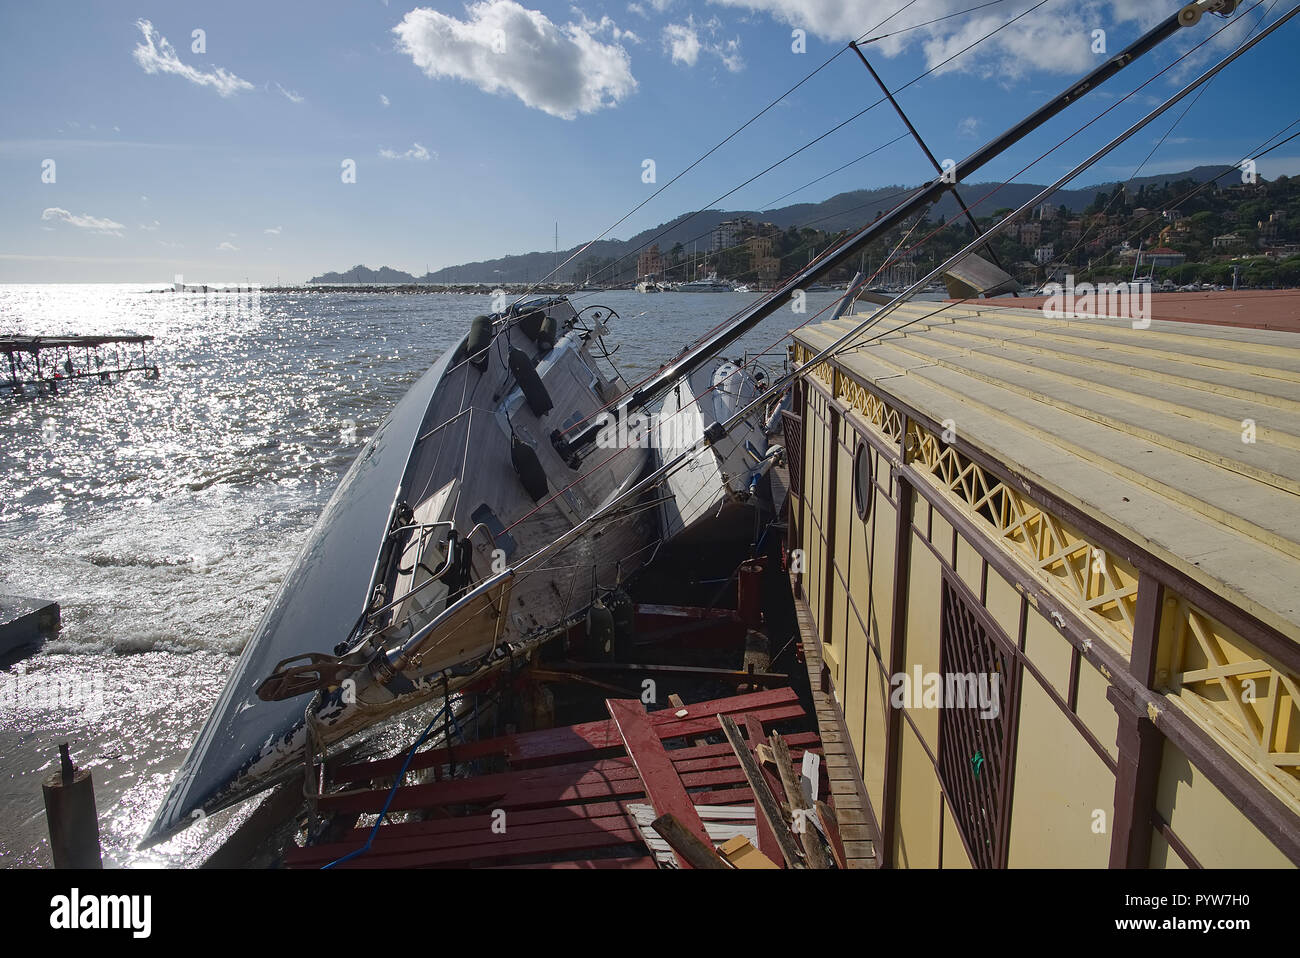 Rapallo, Italy 30th October 2018 Boats and yachts destroyed by the sea Storm damage from the Ligurian Sea - Rapallo - Italy Credit: Claudio Bruni / Alamy Live News - Stock Image